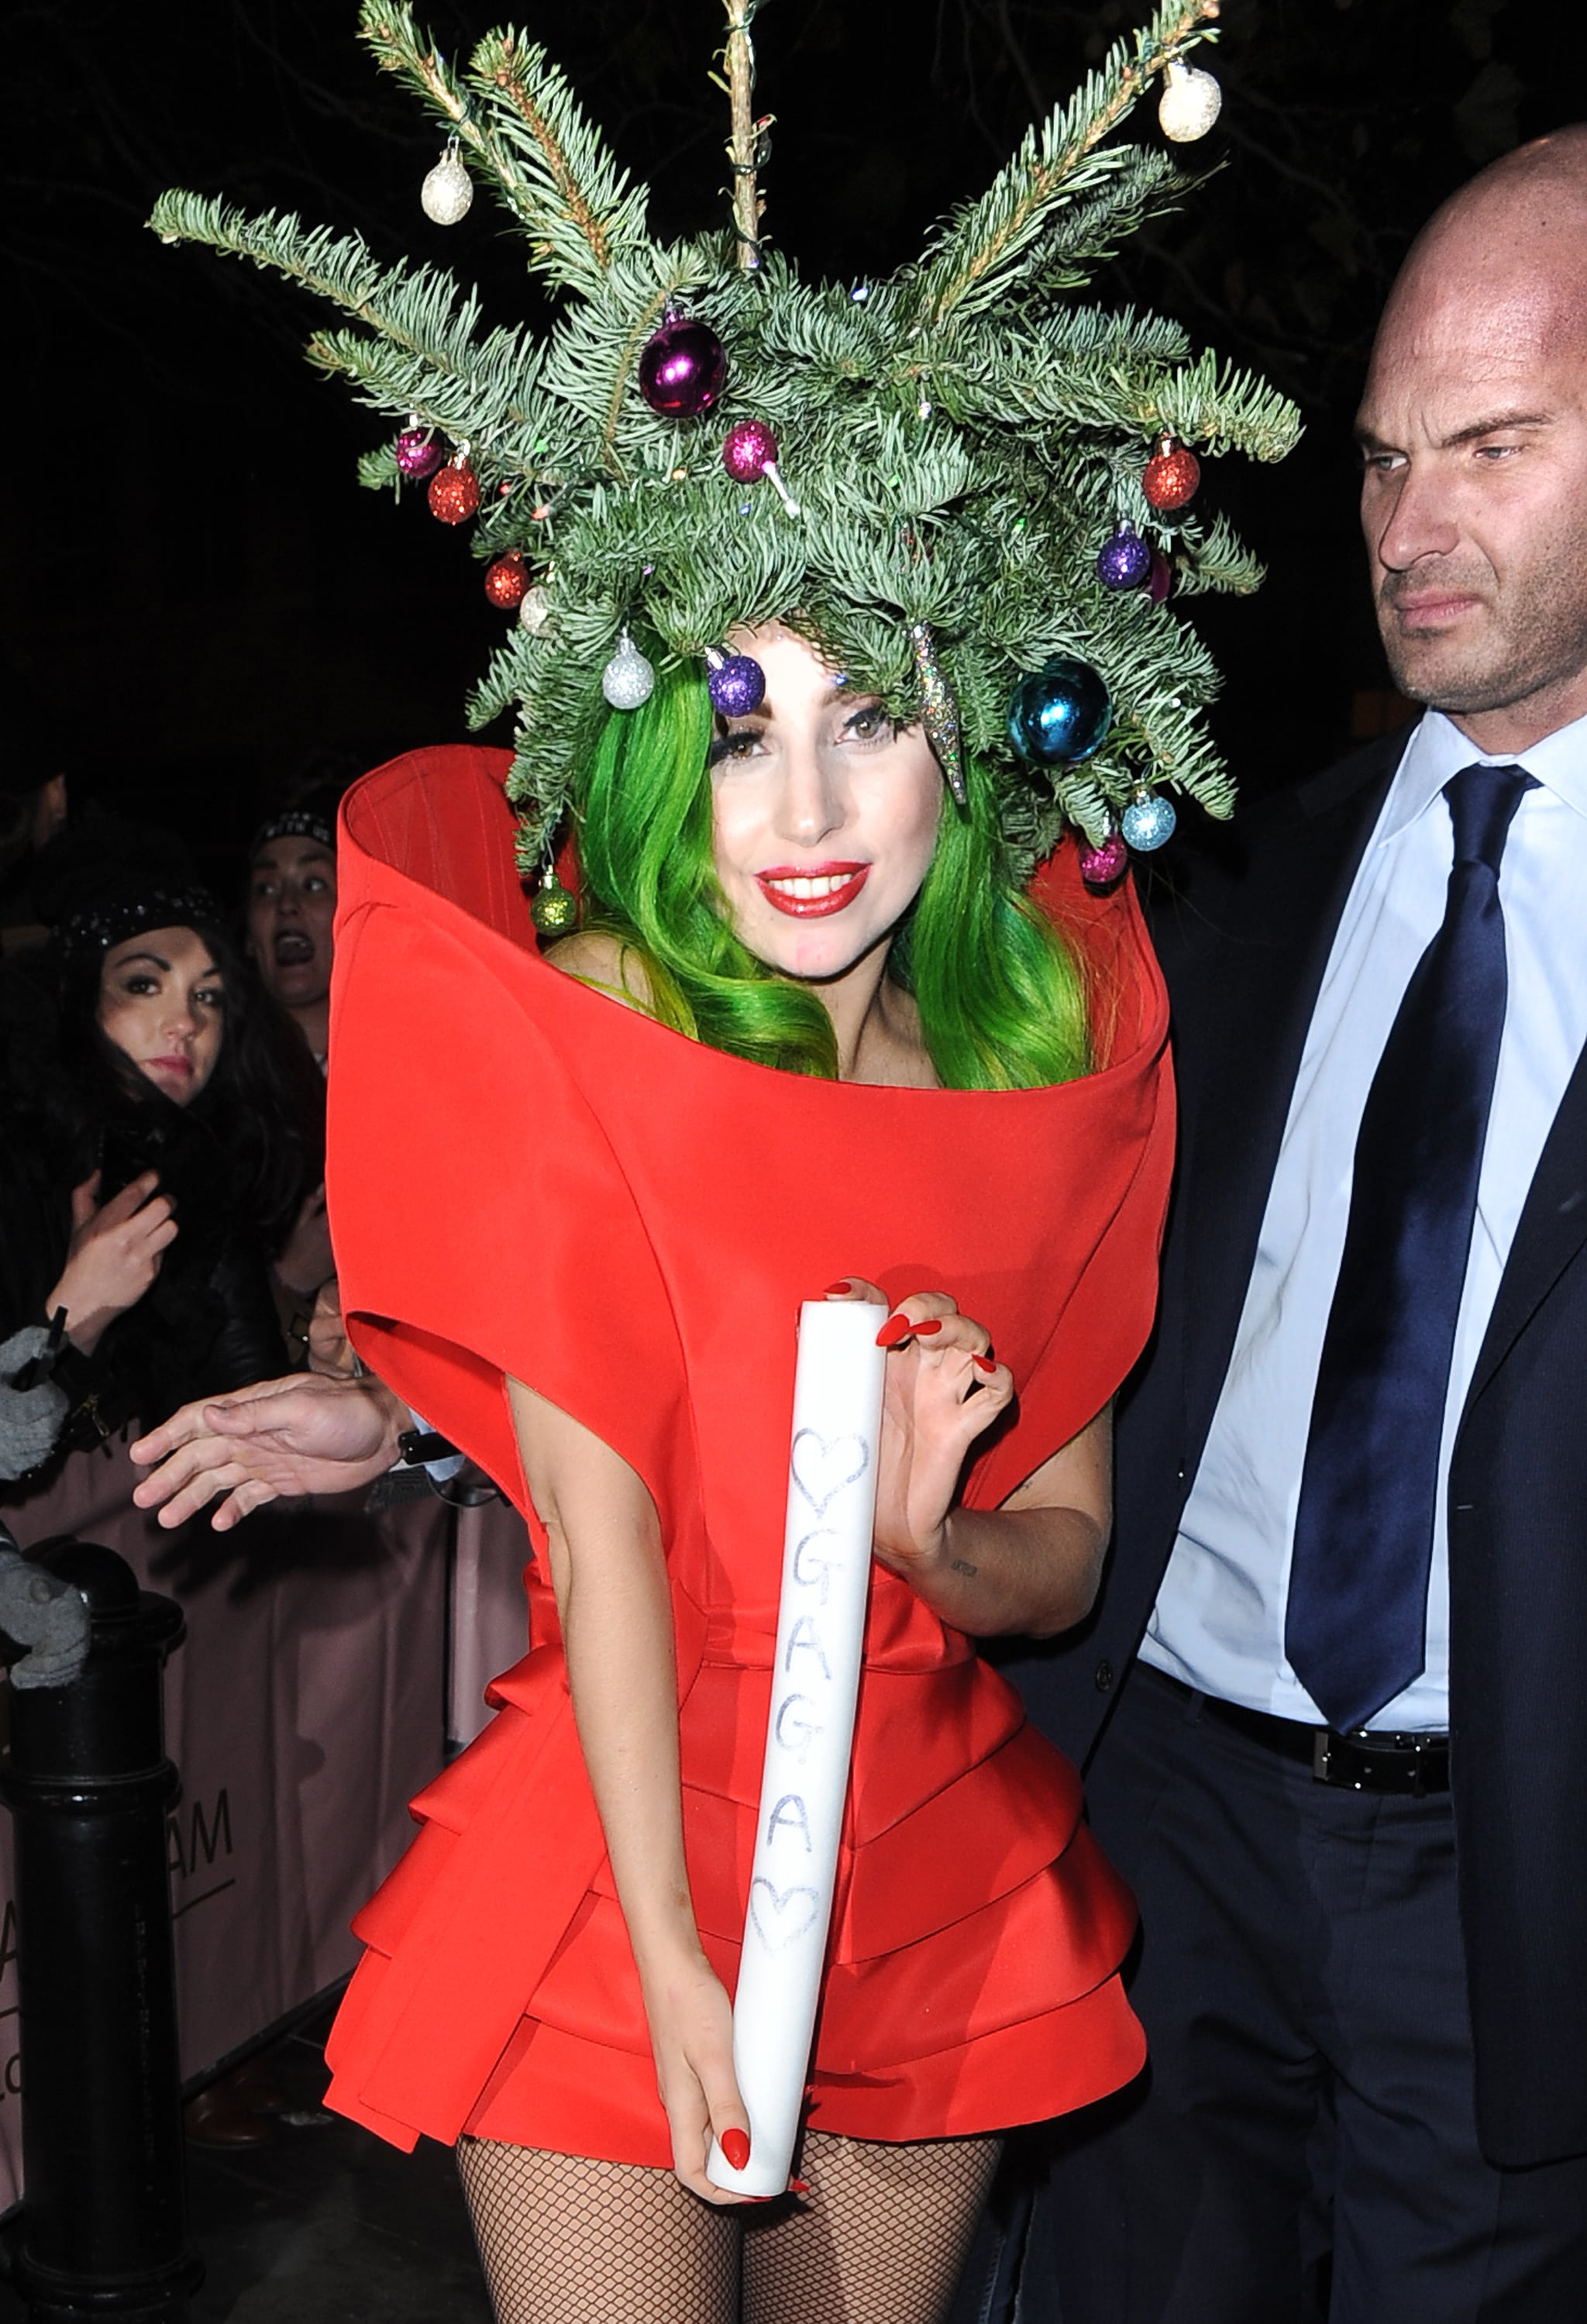 She Literally Became A Christmas Tree The 28 Most Lady Gaga Things Lady Gaga Has Ever Done Popsugar Celebrity Photo 19